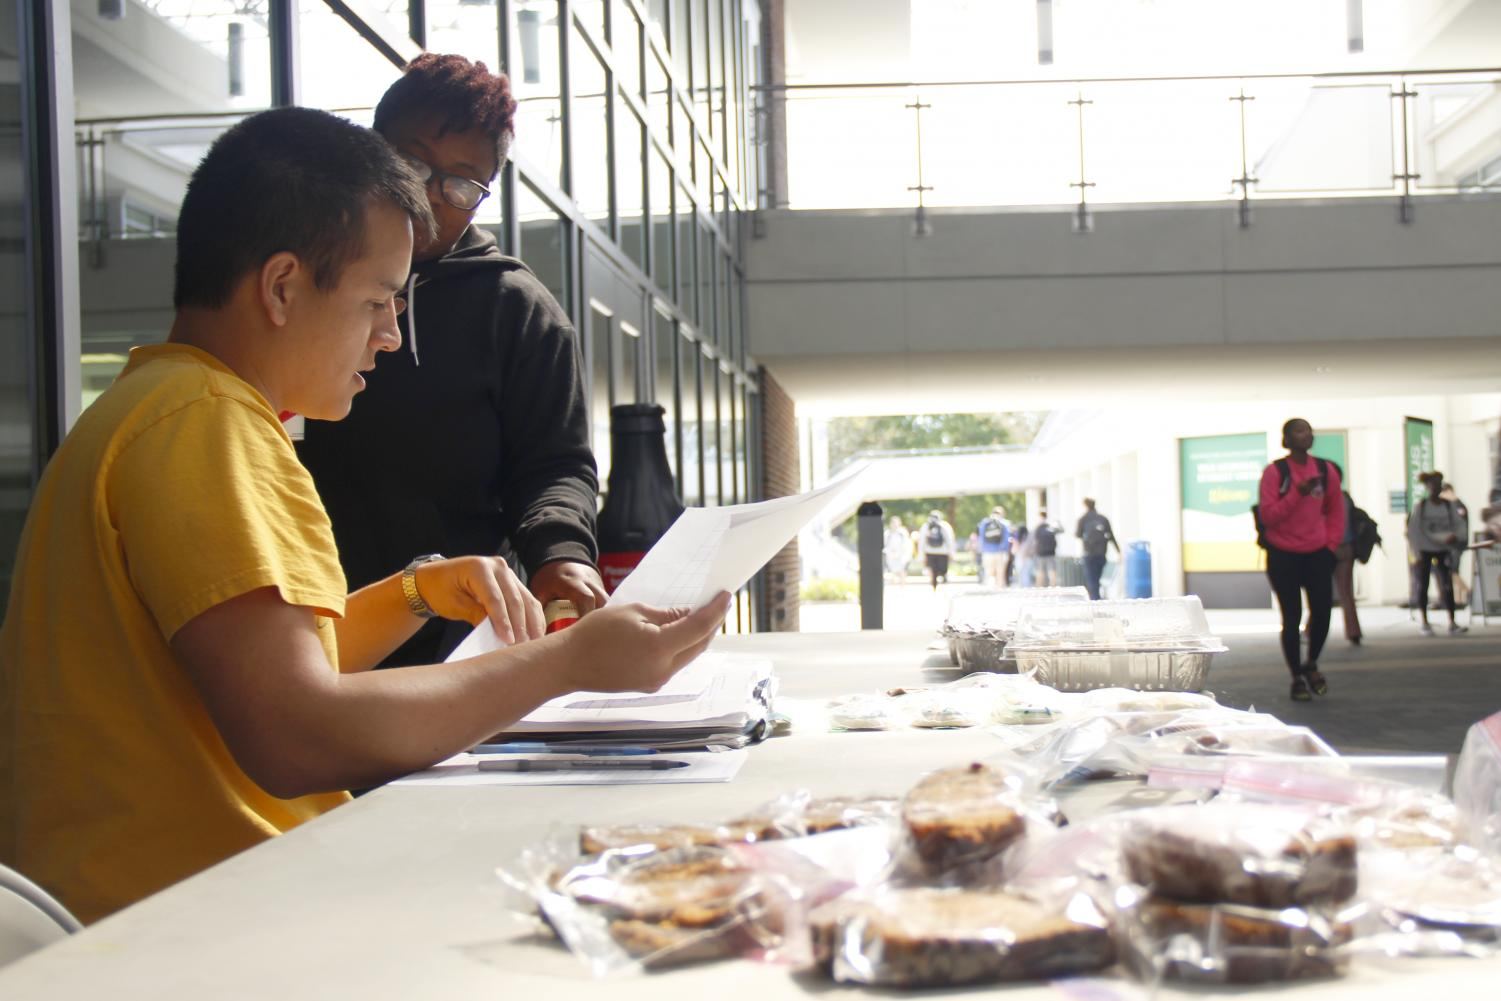 Jean Paul Templet, a sophomore biological sciences major, and Amanda Scott, a junior social work major, discuss their bake sale plans to raise money for their organization and spread awareness on mental illness.